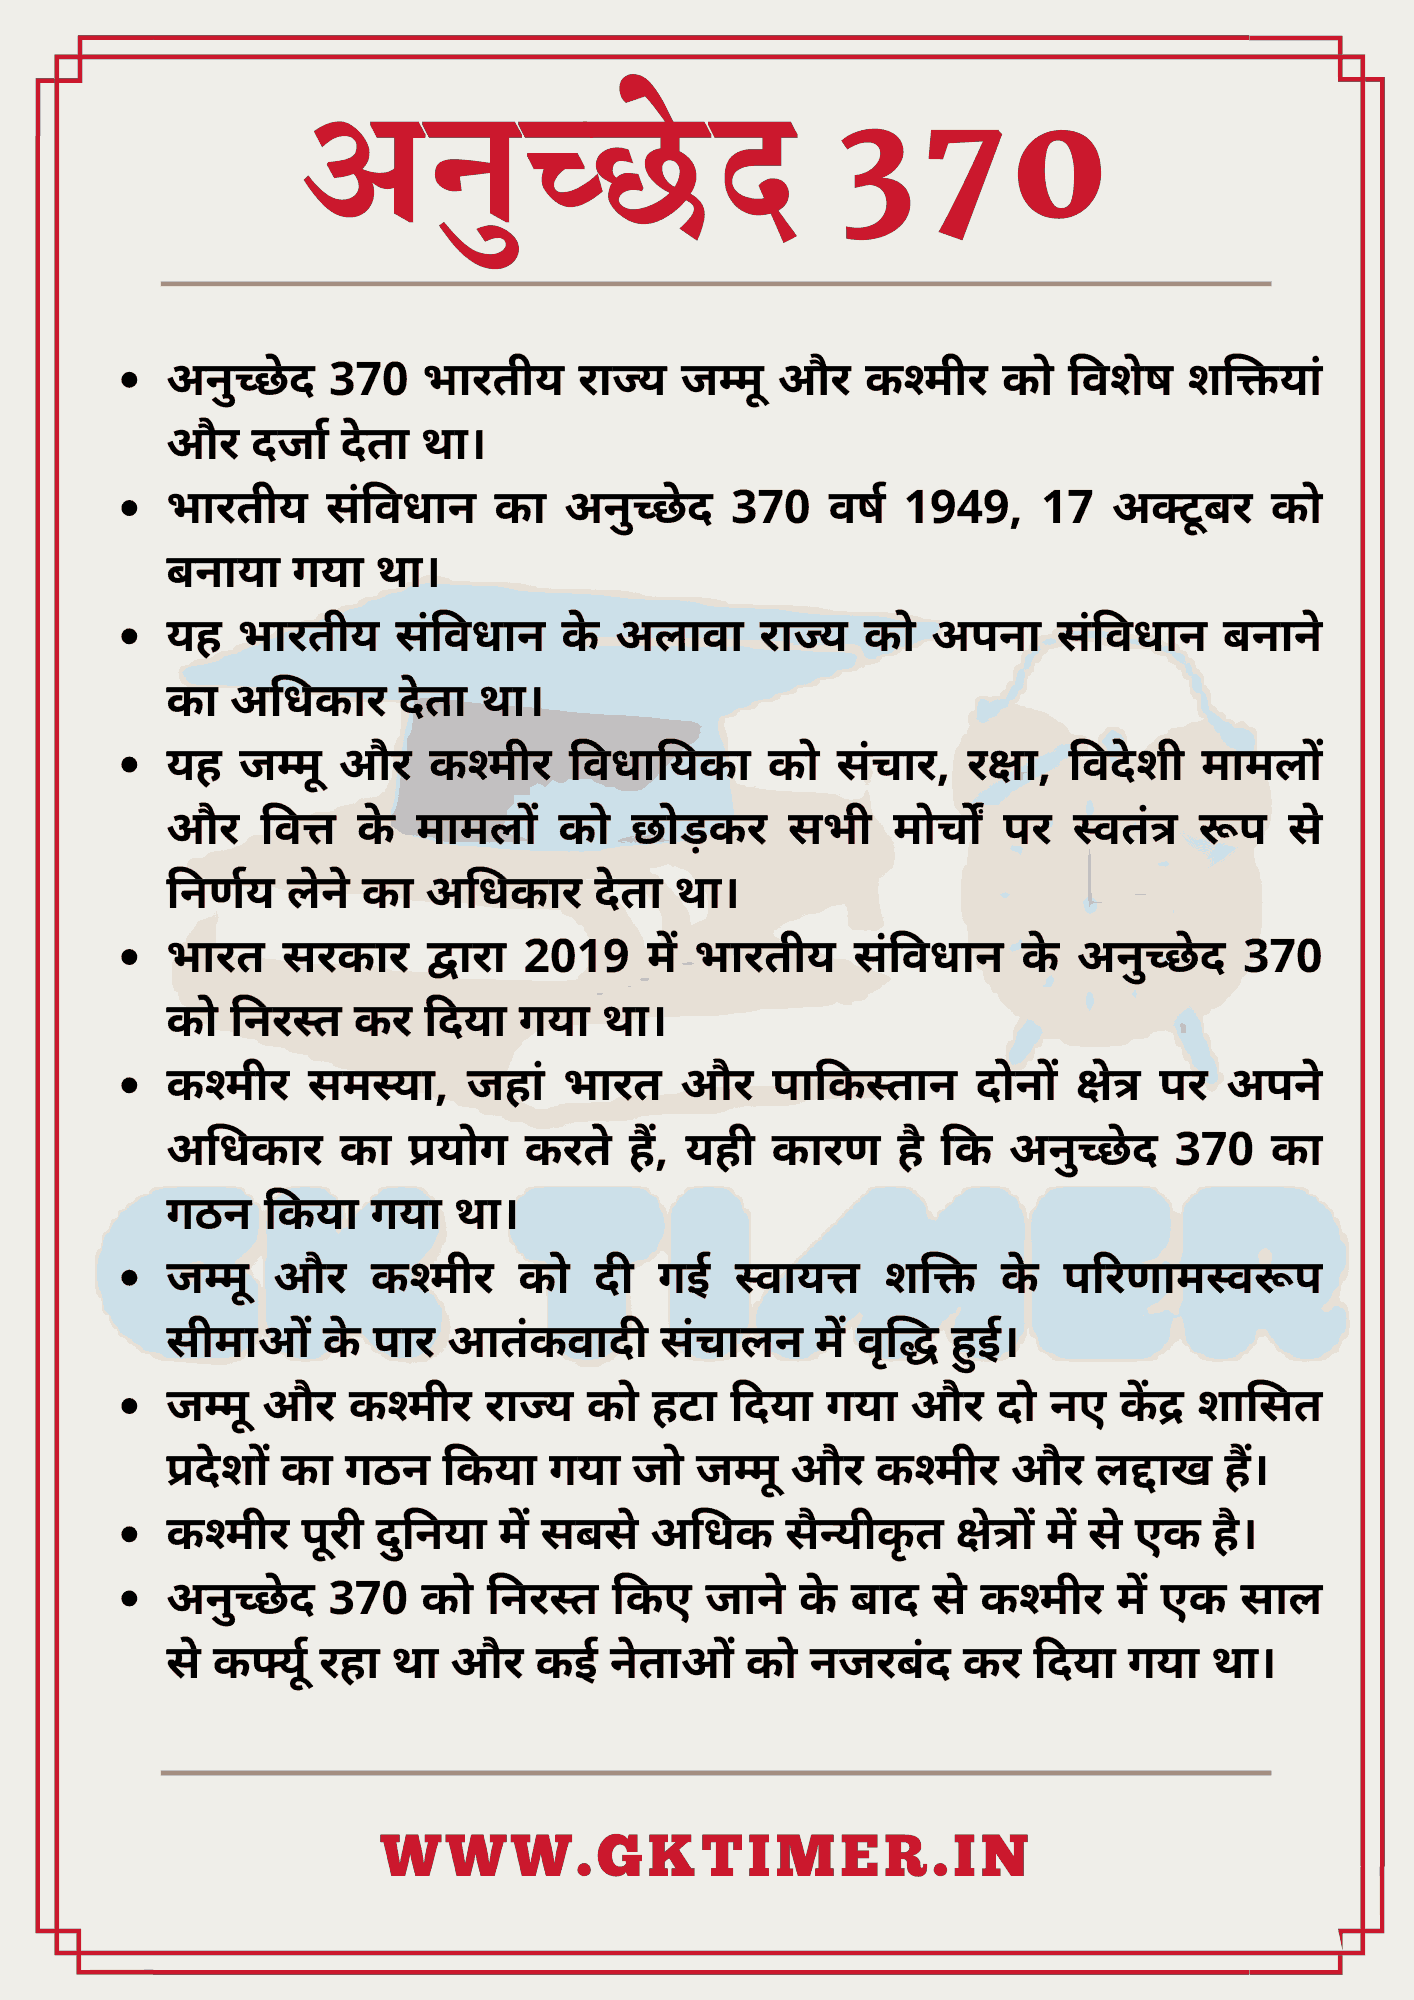 अनुच्छेद 370 पर निबंध | Long and Short Essay on Article 370 in Hindi | 10 Lines on Article 370 in Hindi